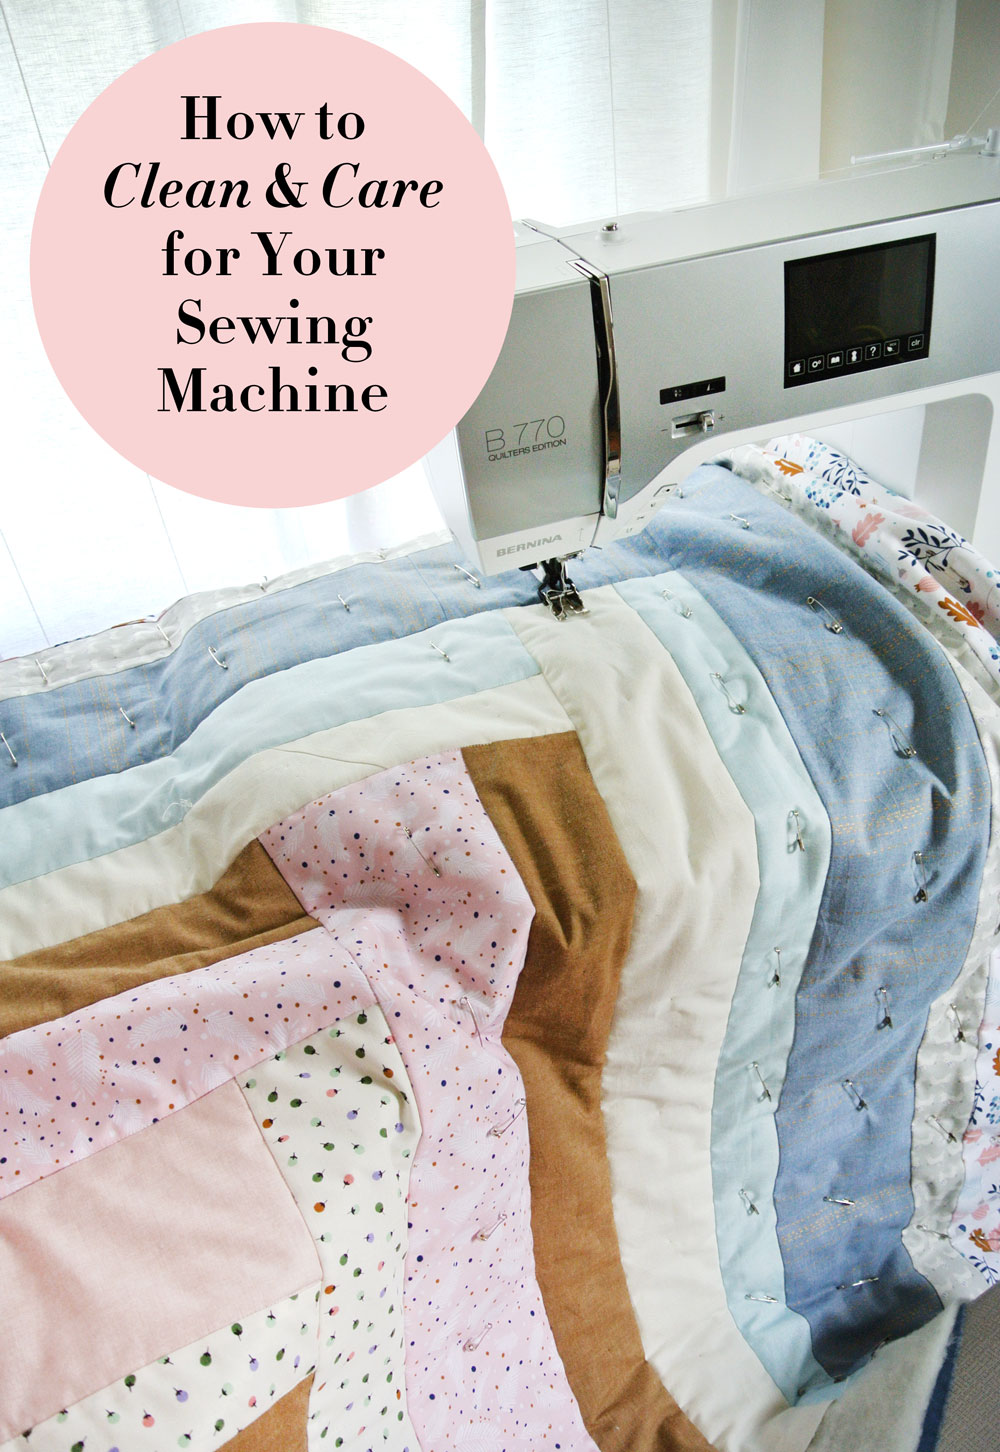 How-to-Clean-Sewing-Machine